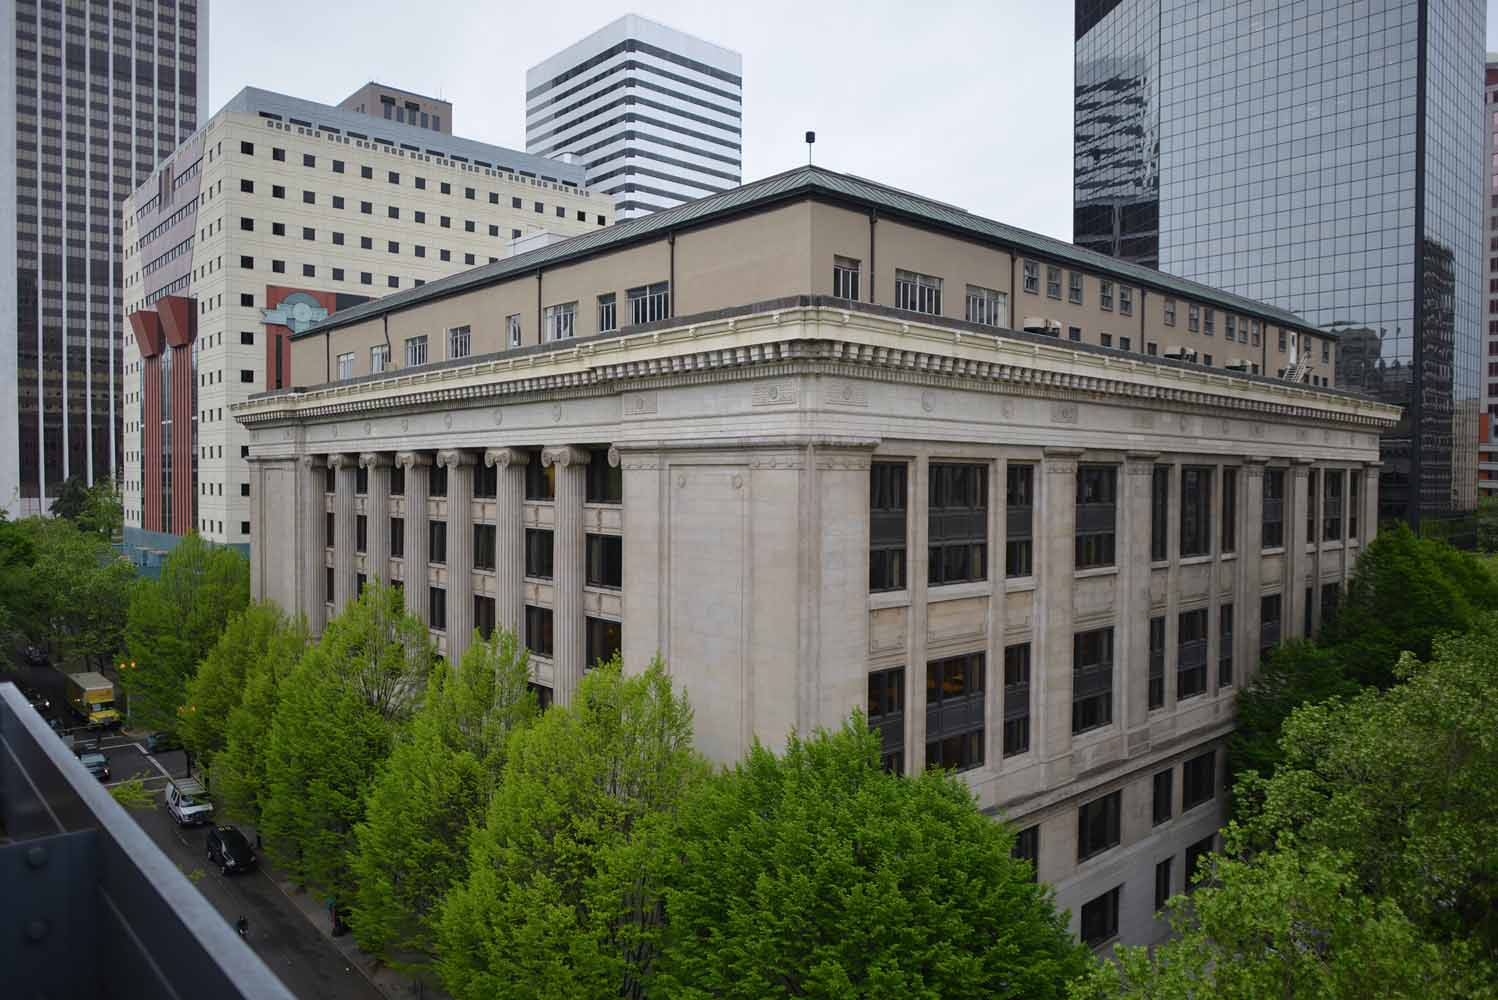 The Multnomah County Courthouse, in downtown Portland, Oregon.